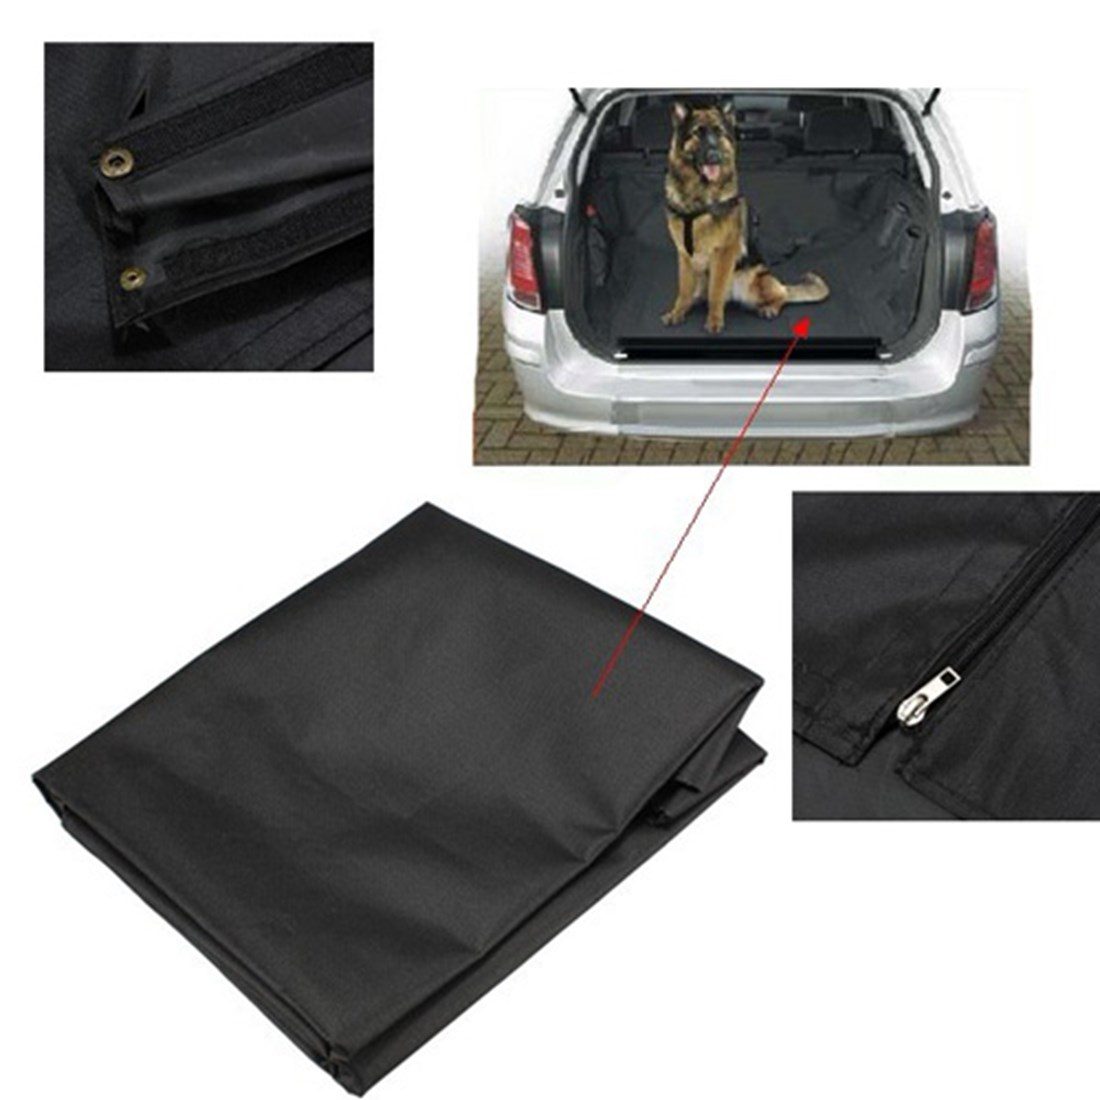 Rubber floor mats for dogs - Black Universal Waterproof Car Boot Protector Liner Dog Pet Floor Mat Cover Seat Large Size